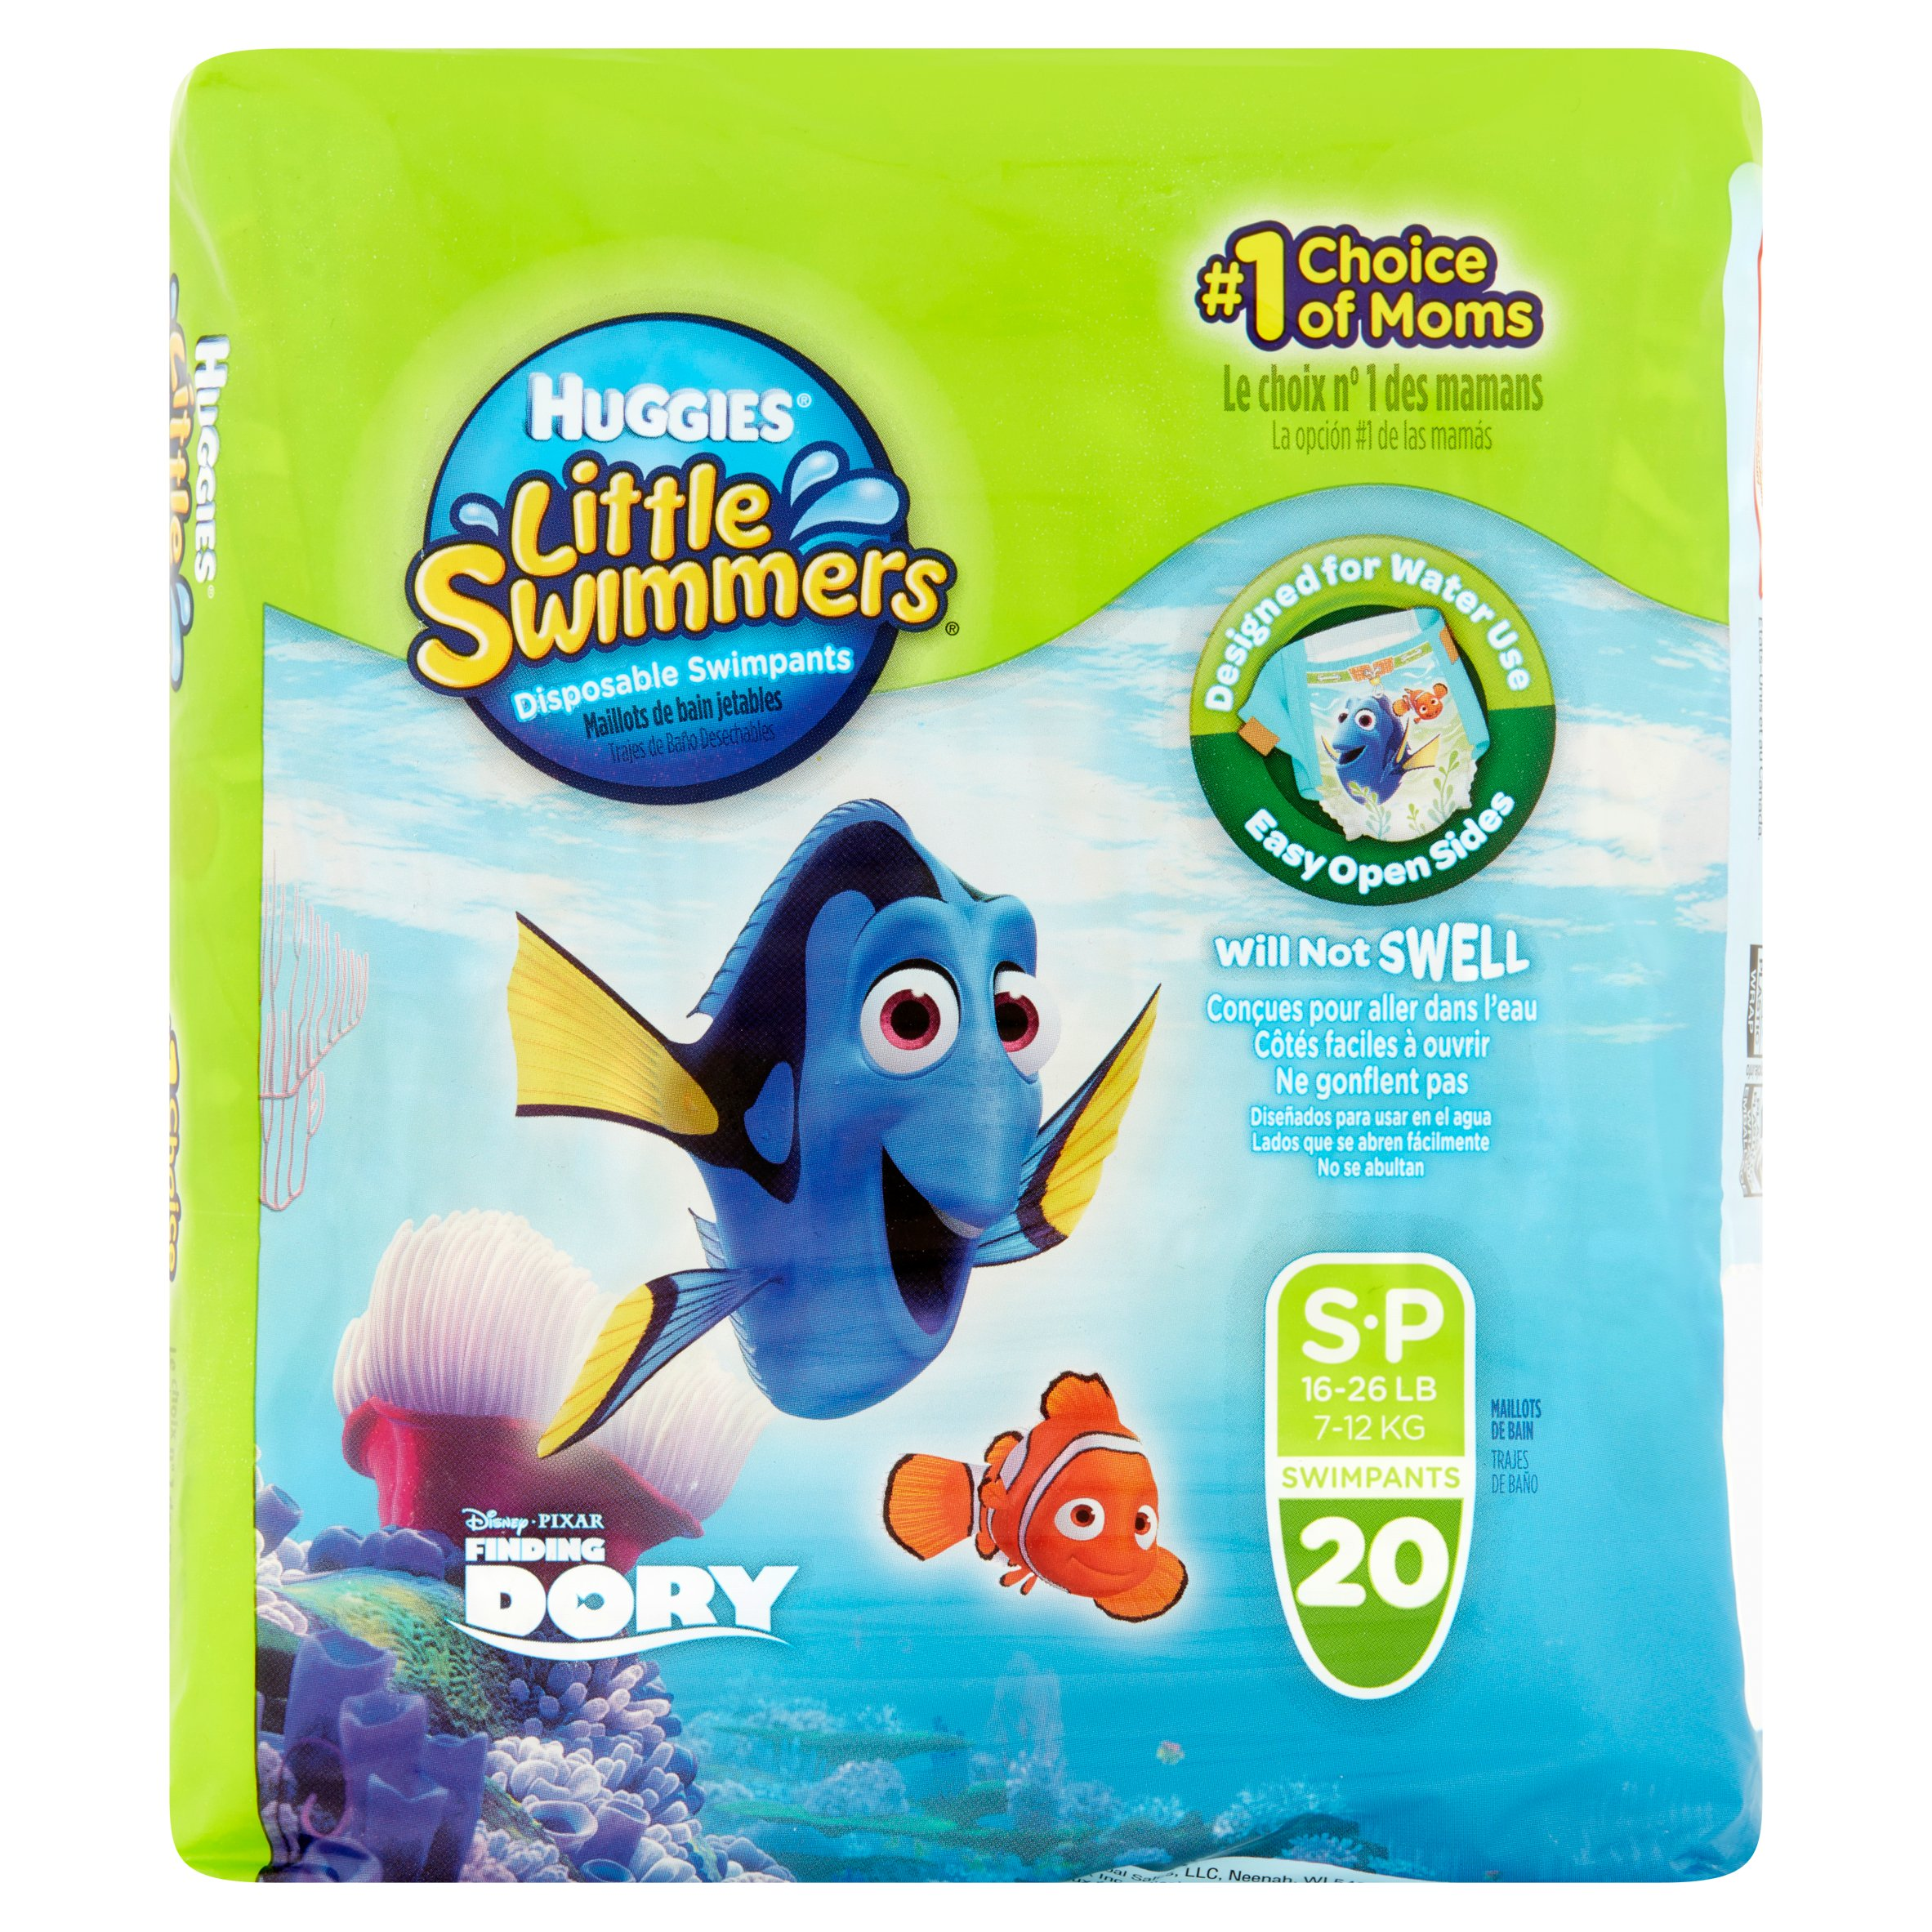 Huggies Little Swimmers Disposable Diaper Swimpants, Size Small, 20 Count